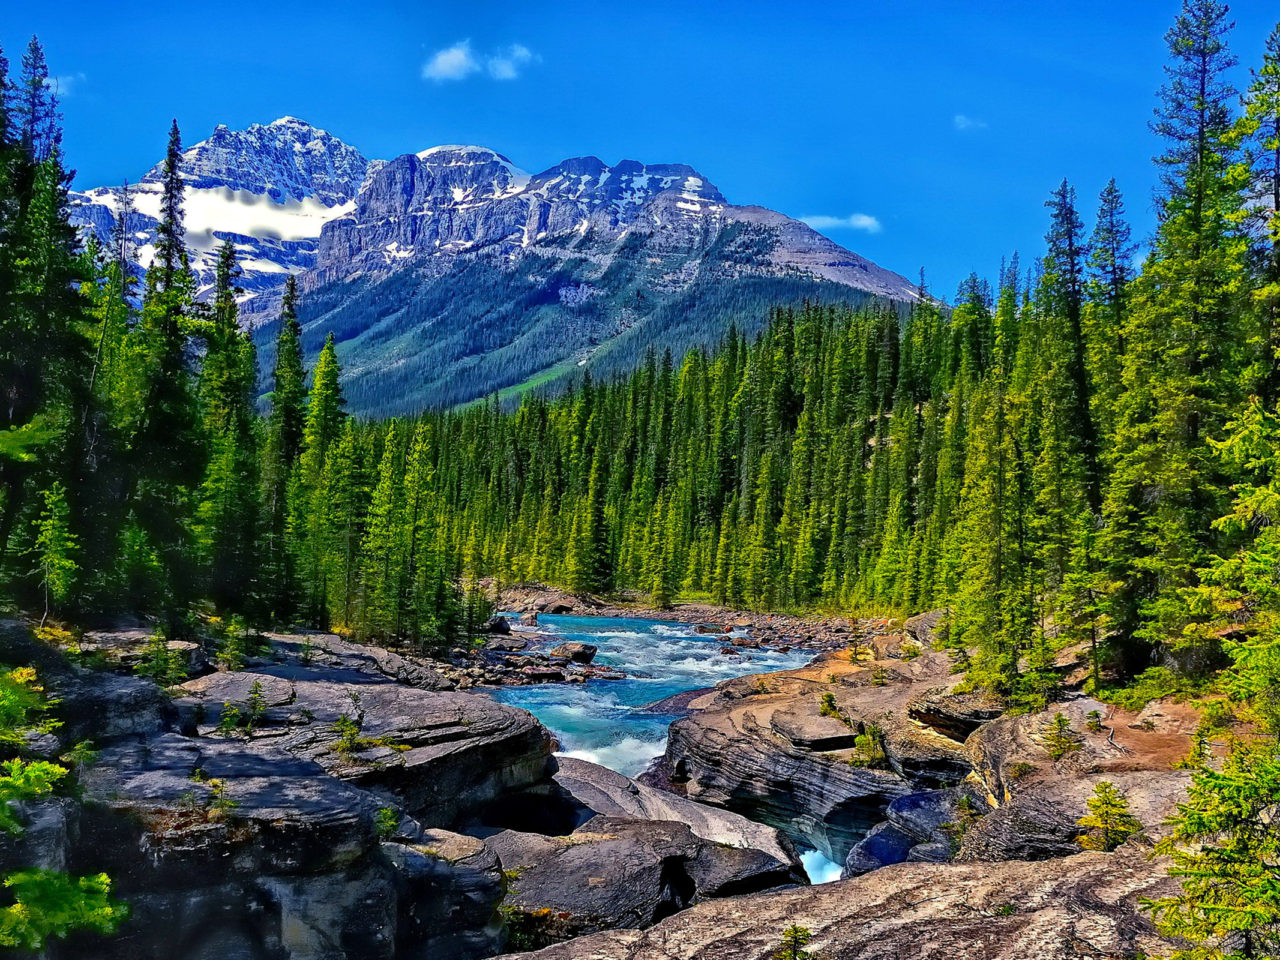 Purple Wallpaper For Iphone 5 Alberta Canada Banff National Park Mistaya River And